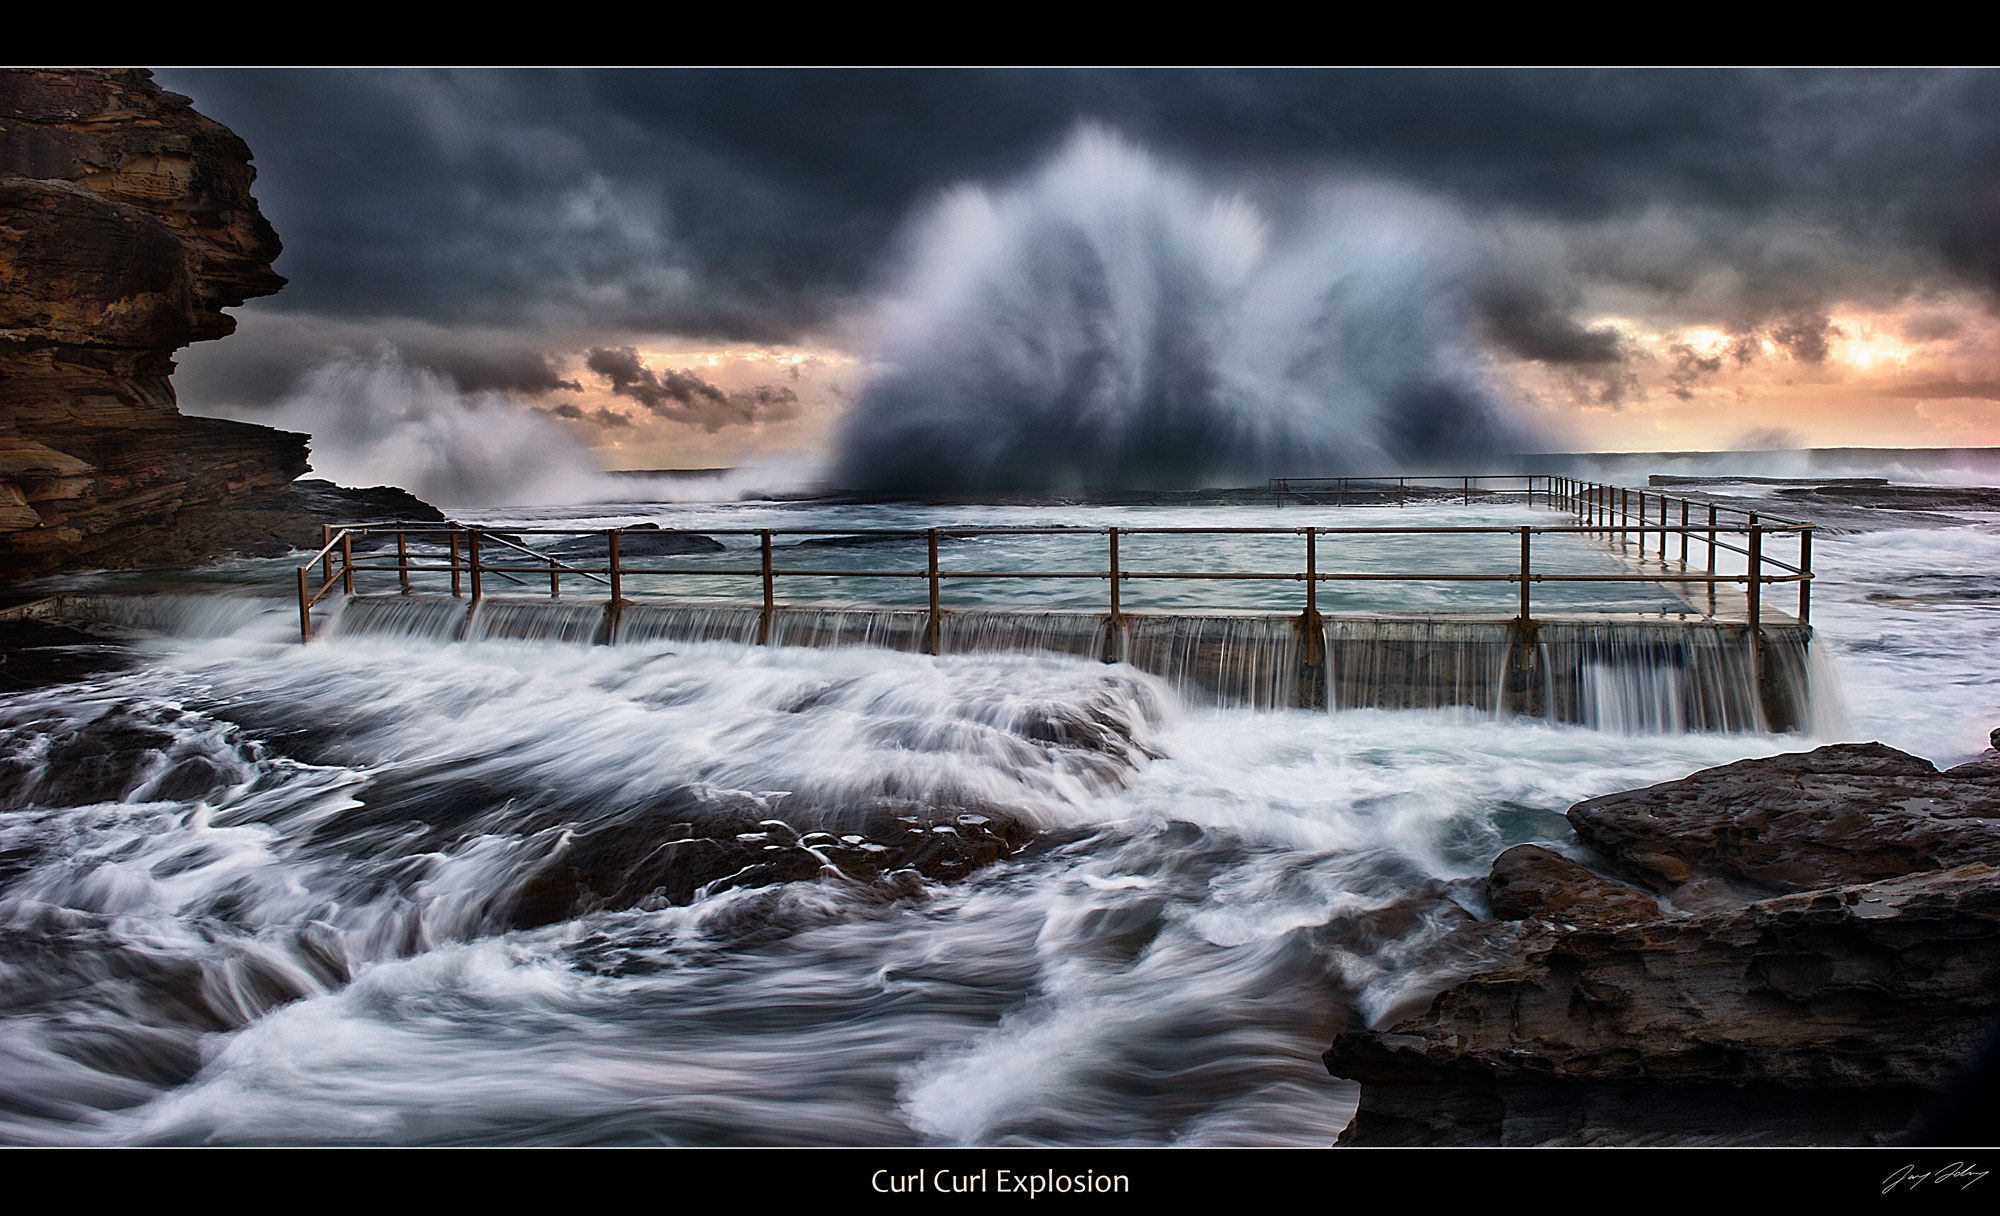 Photograph North Curl Curl Explosion by Jay Daley on 500px